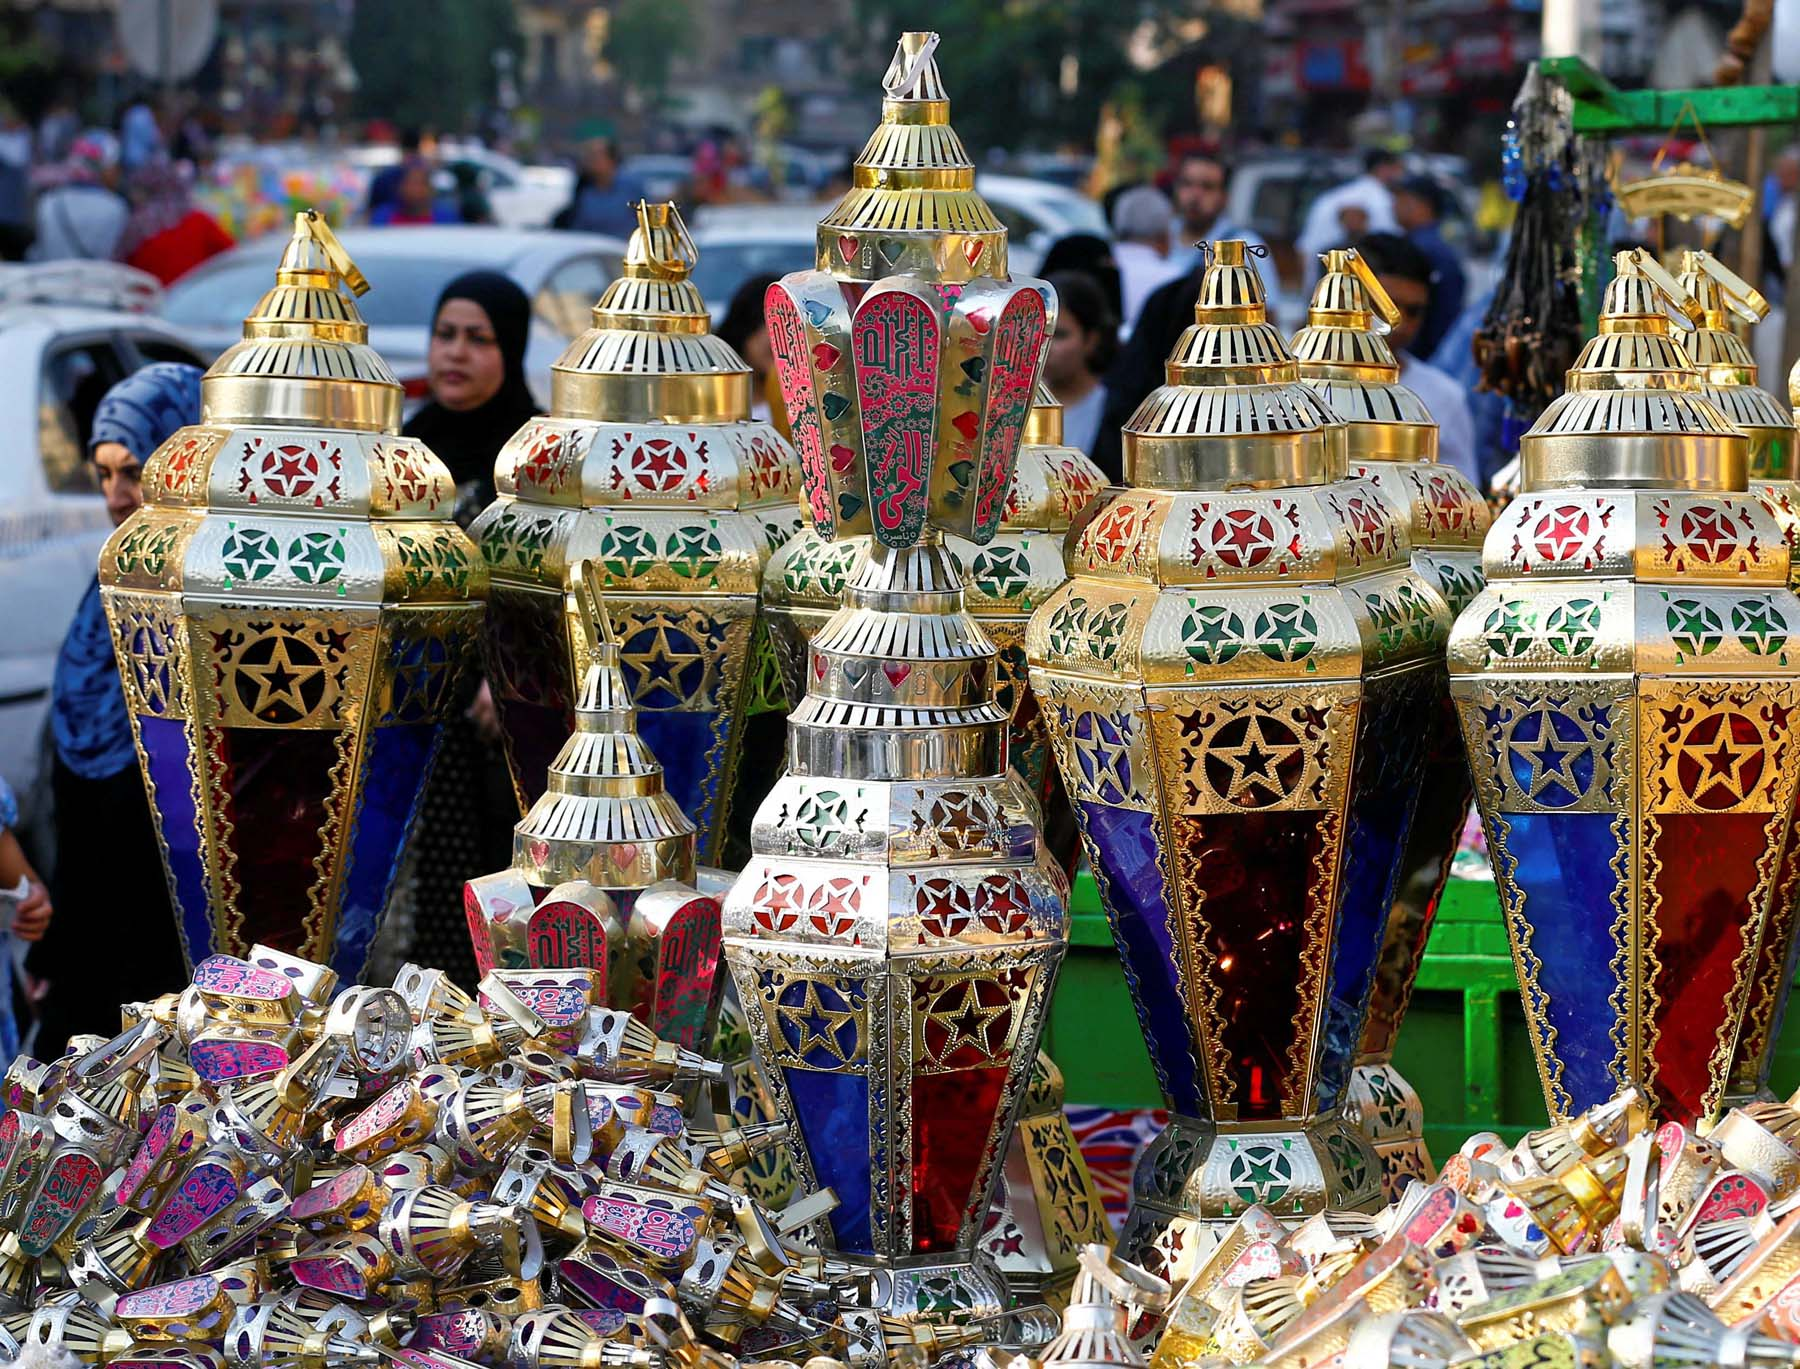 Festive season. Traditional lanterns on diplay ahead of the Muslim holy month of Ramadan in Cairo. (Reuters)